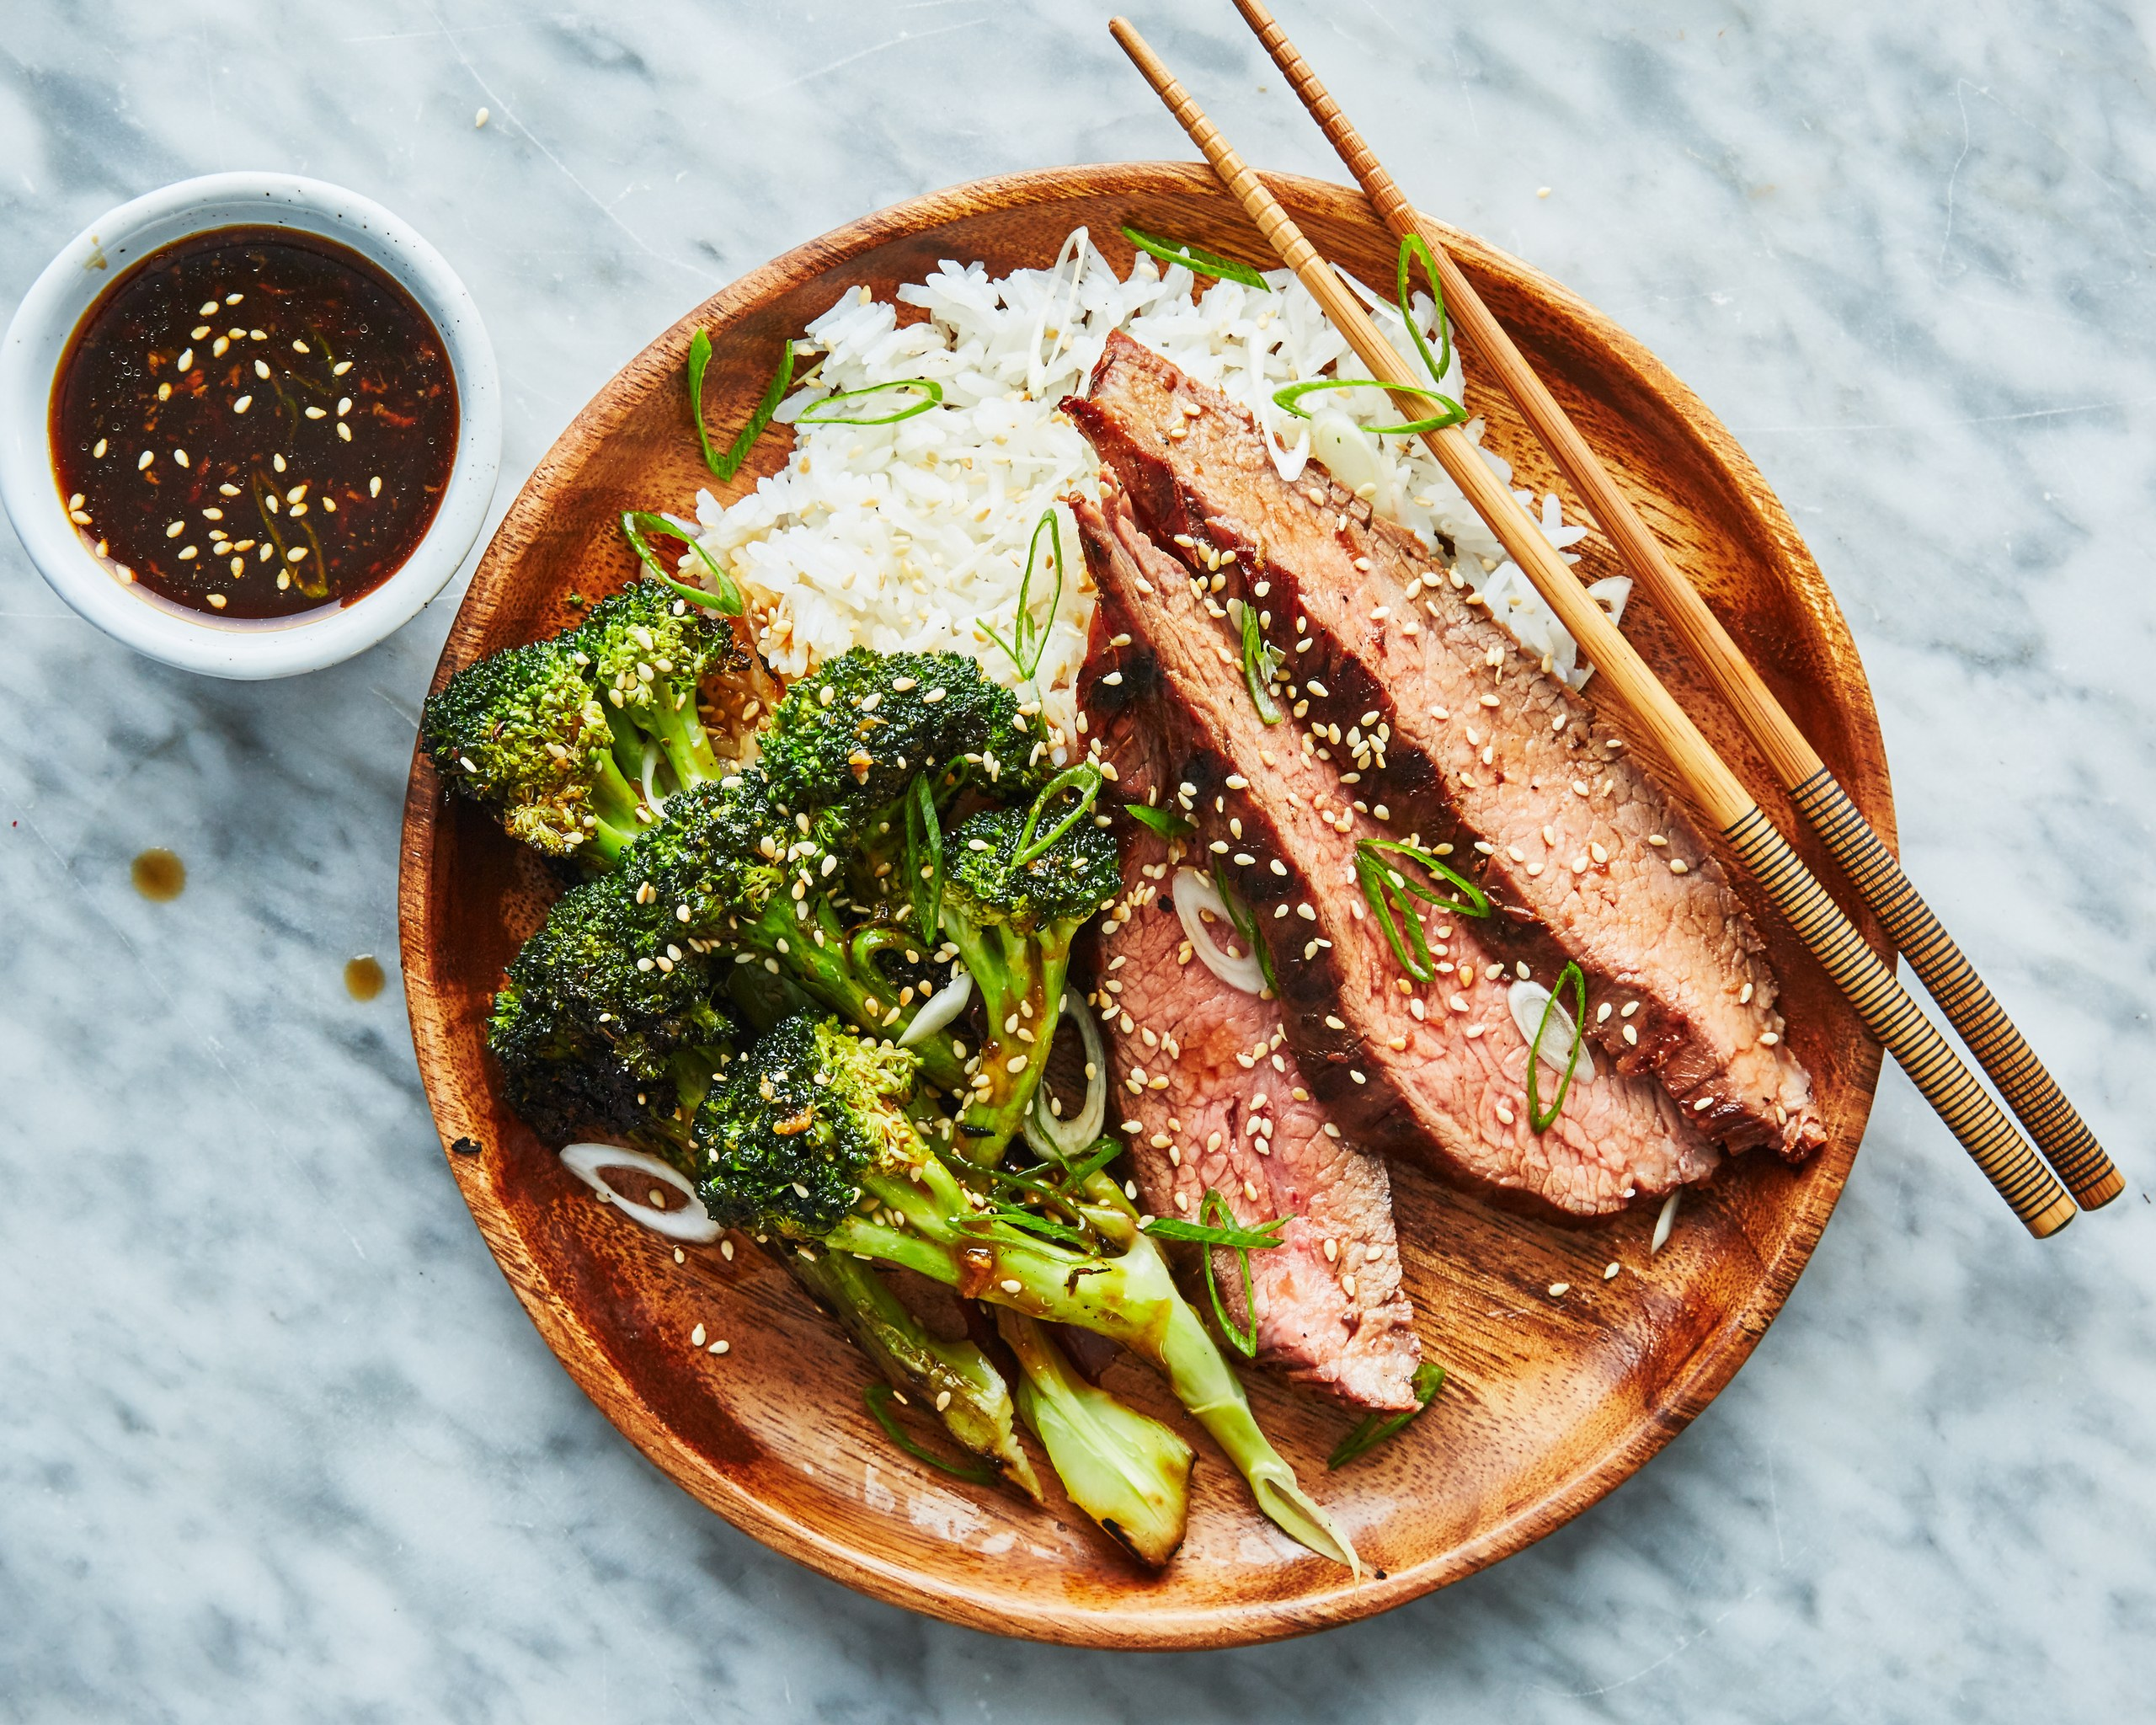 0817-murray-mancini-grilled-chinese-beef-broccoli